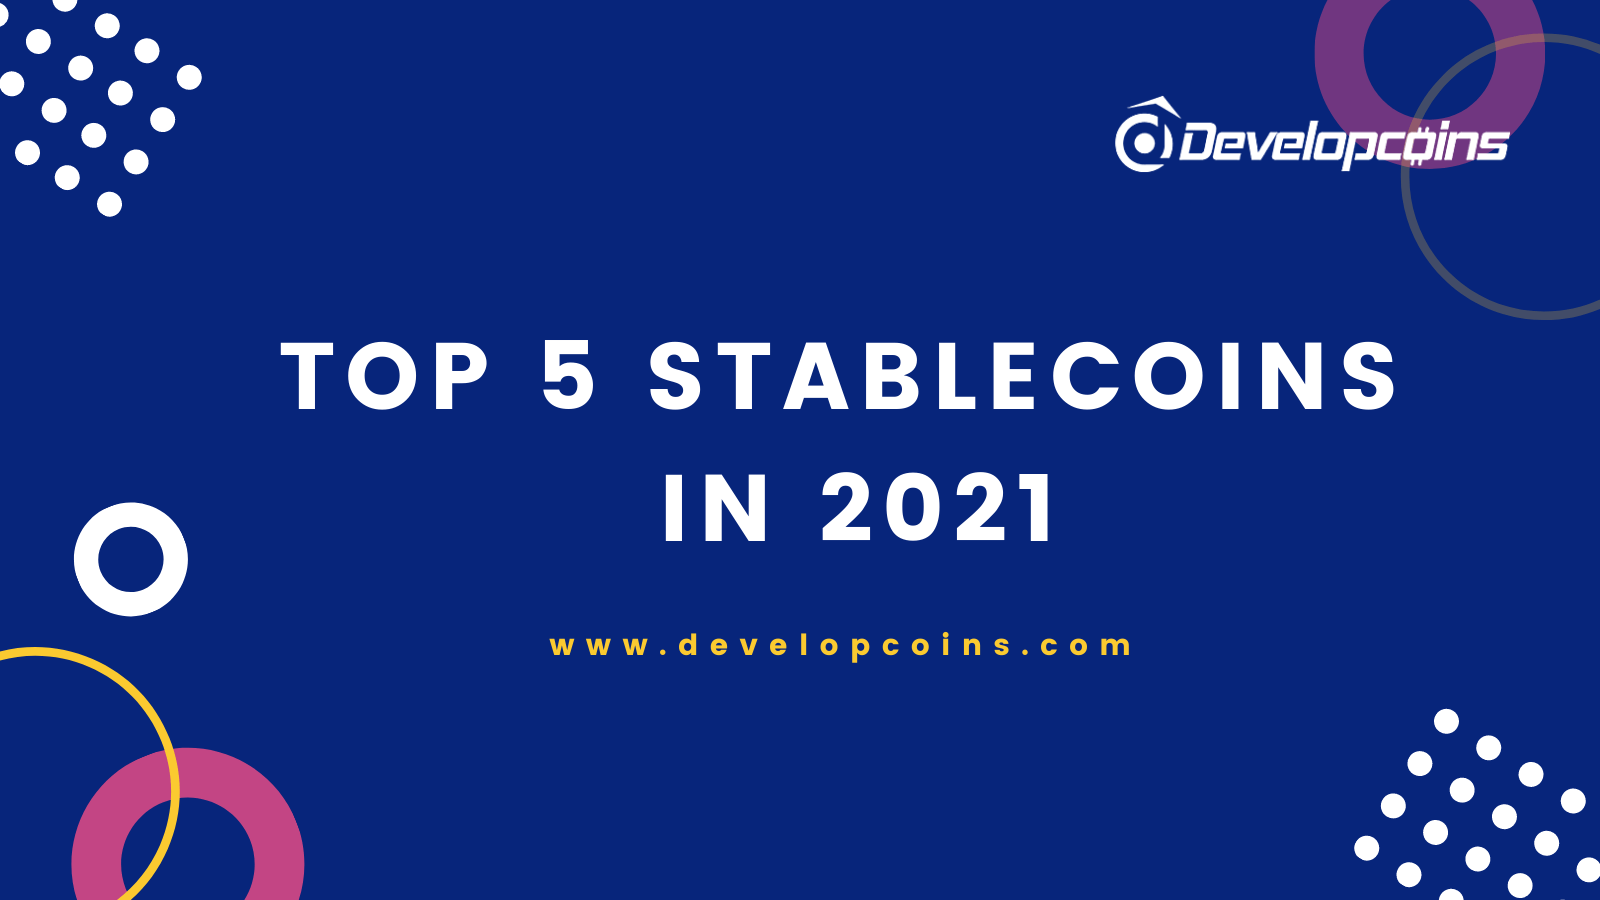 Brief Explanation of Top 5 Stablecoin Usage in Cryptocurrency Industry